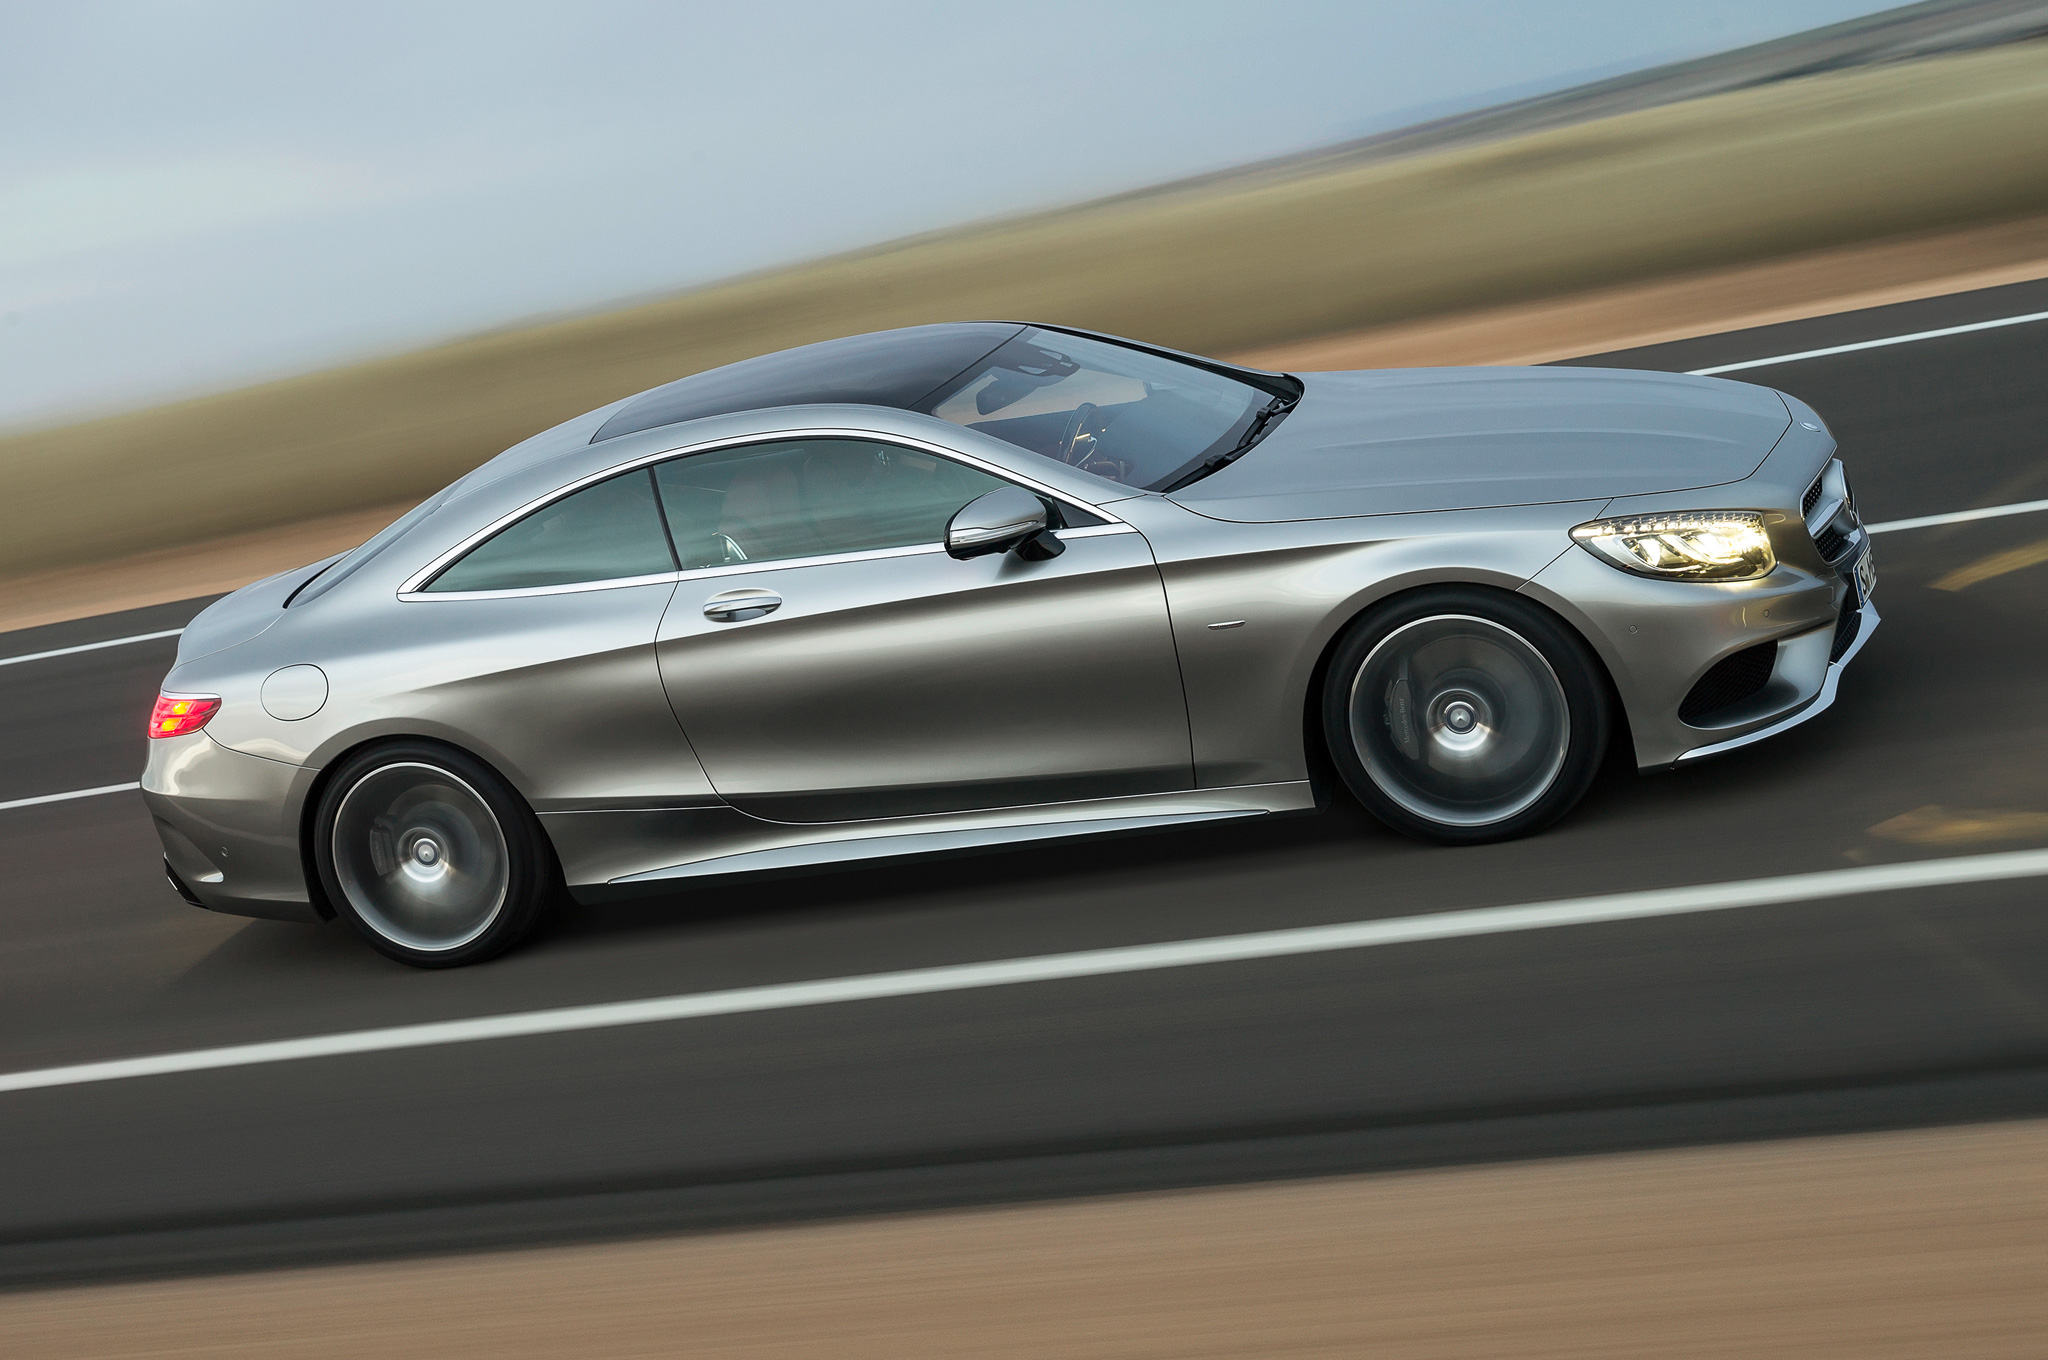 A review of 2015 mercedes benz s class image 2 for Mercedes benz s class review